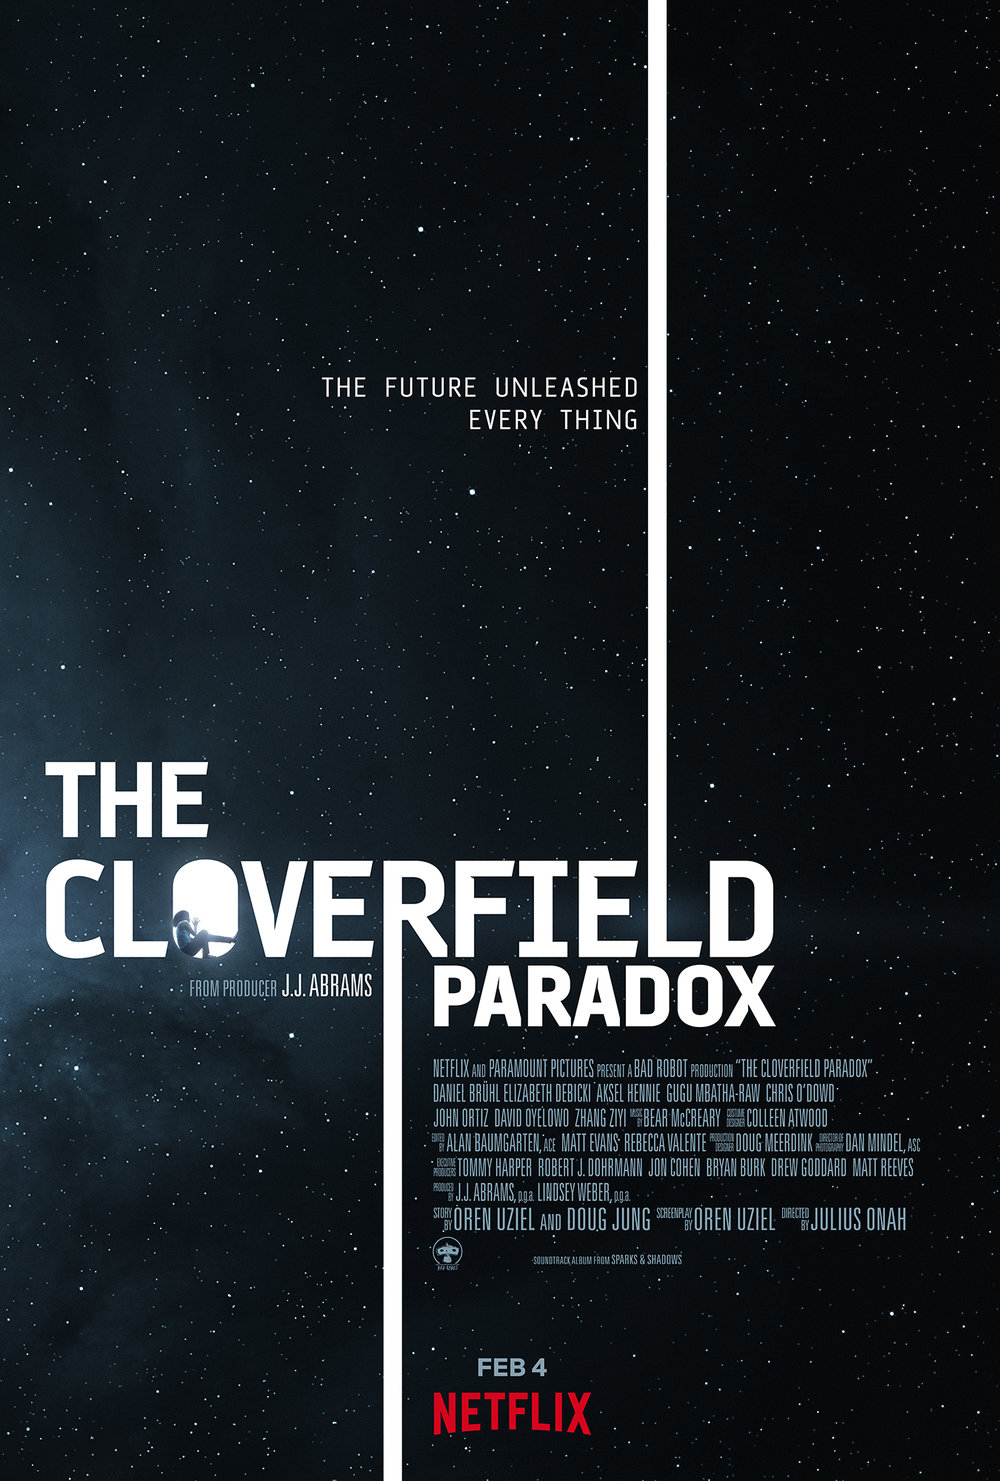 Thoughts On: The Cloverfield Paradox - The Problem In The Script